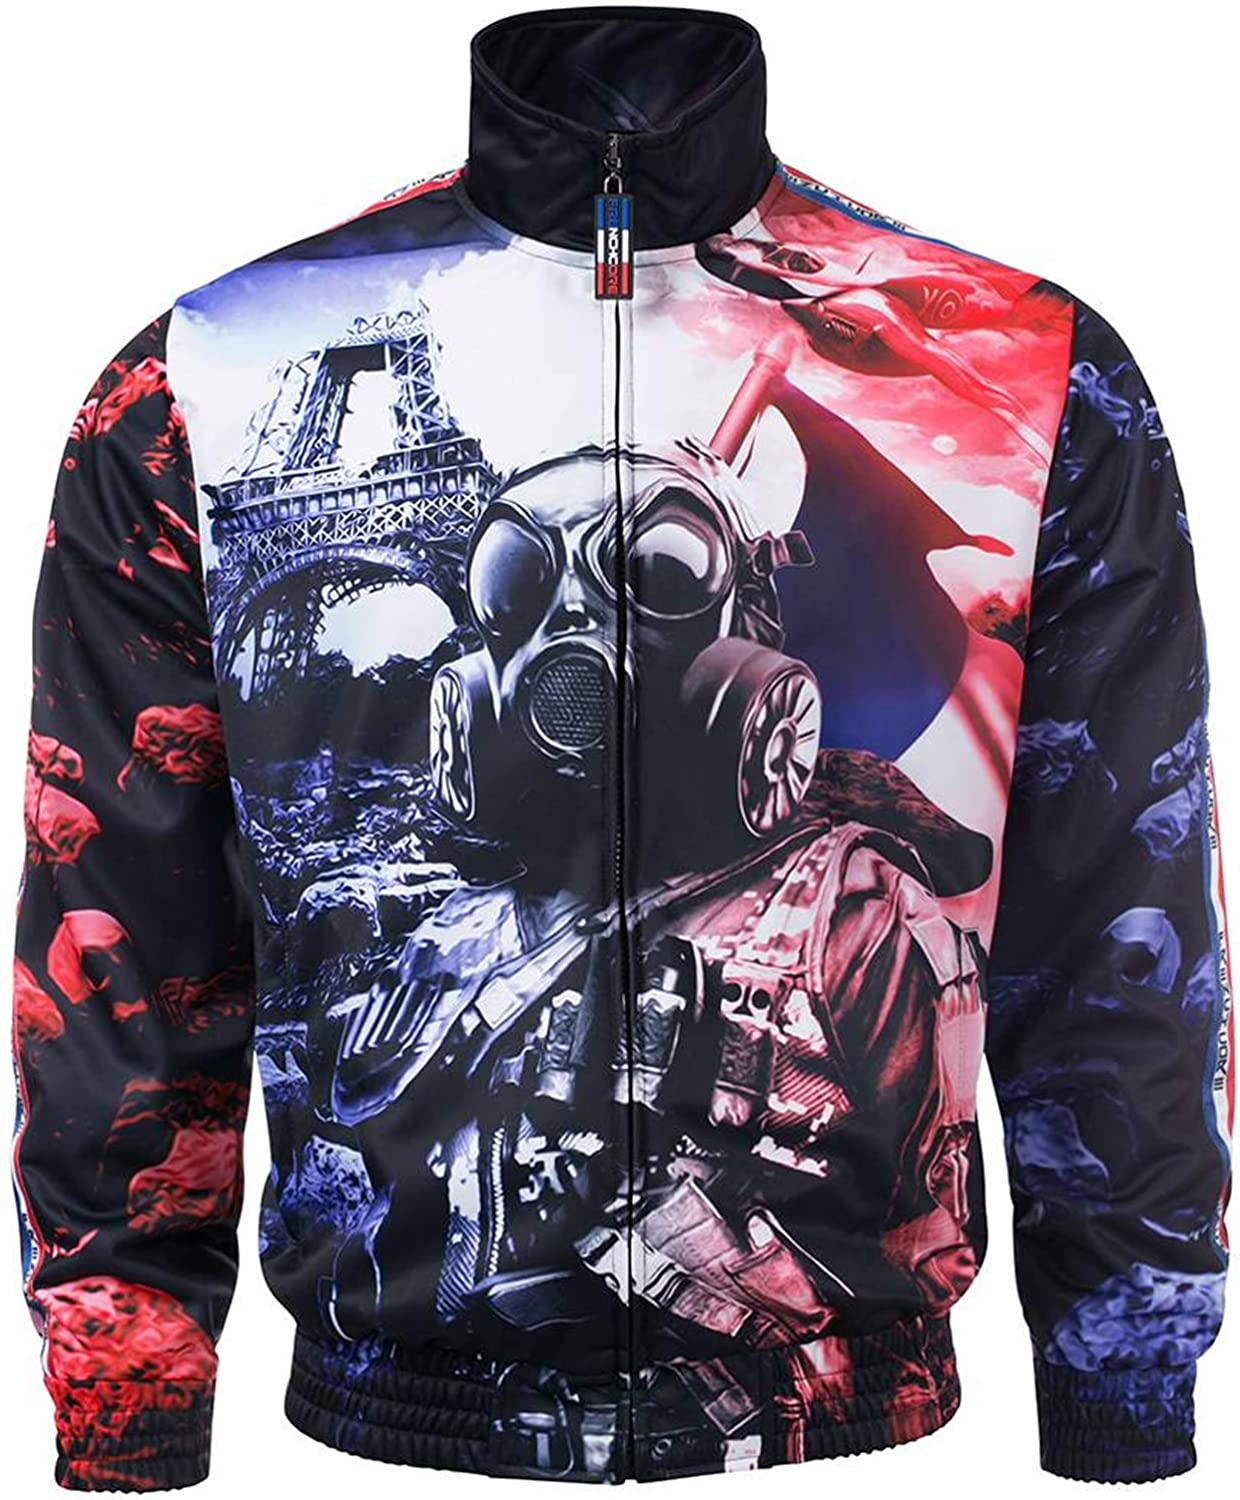 100% HARDCORE Trainingsjacke Frenchcore Jacke Paris (XS